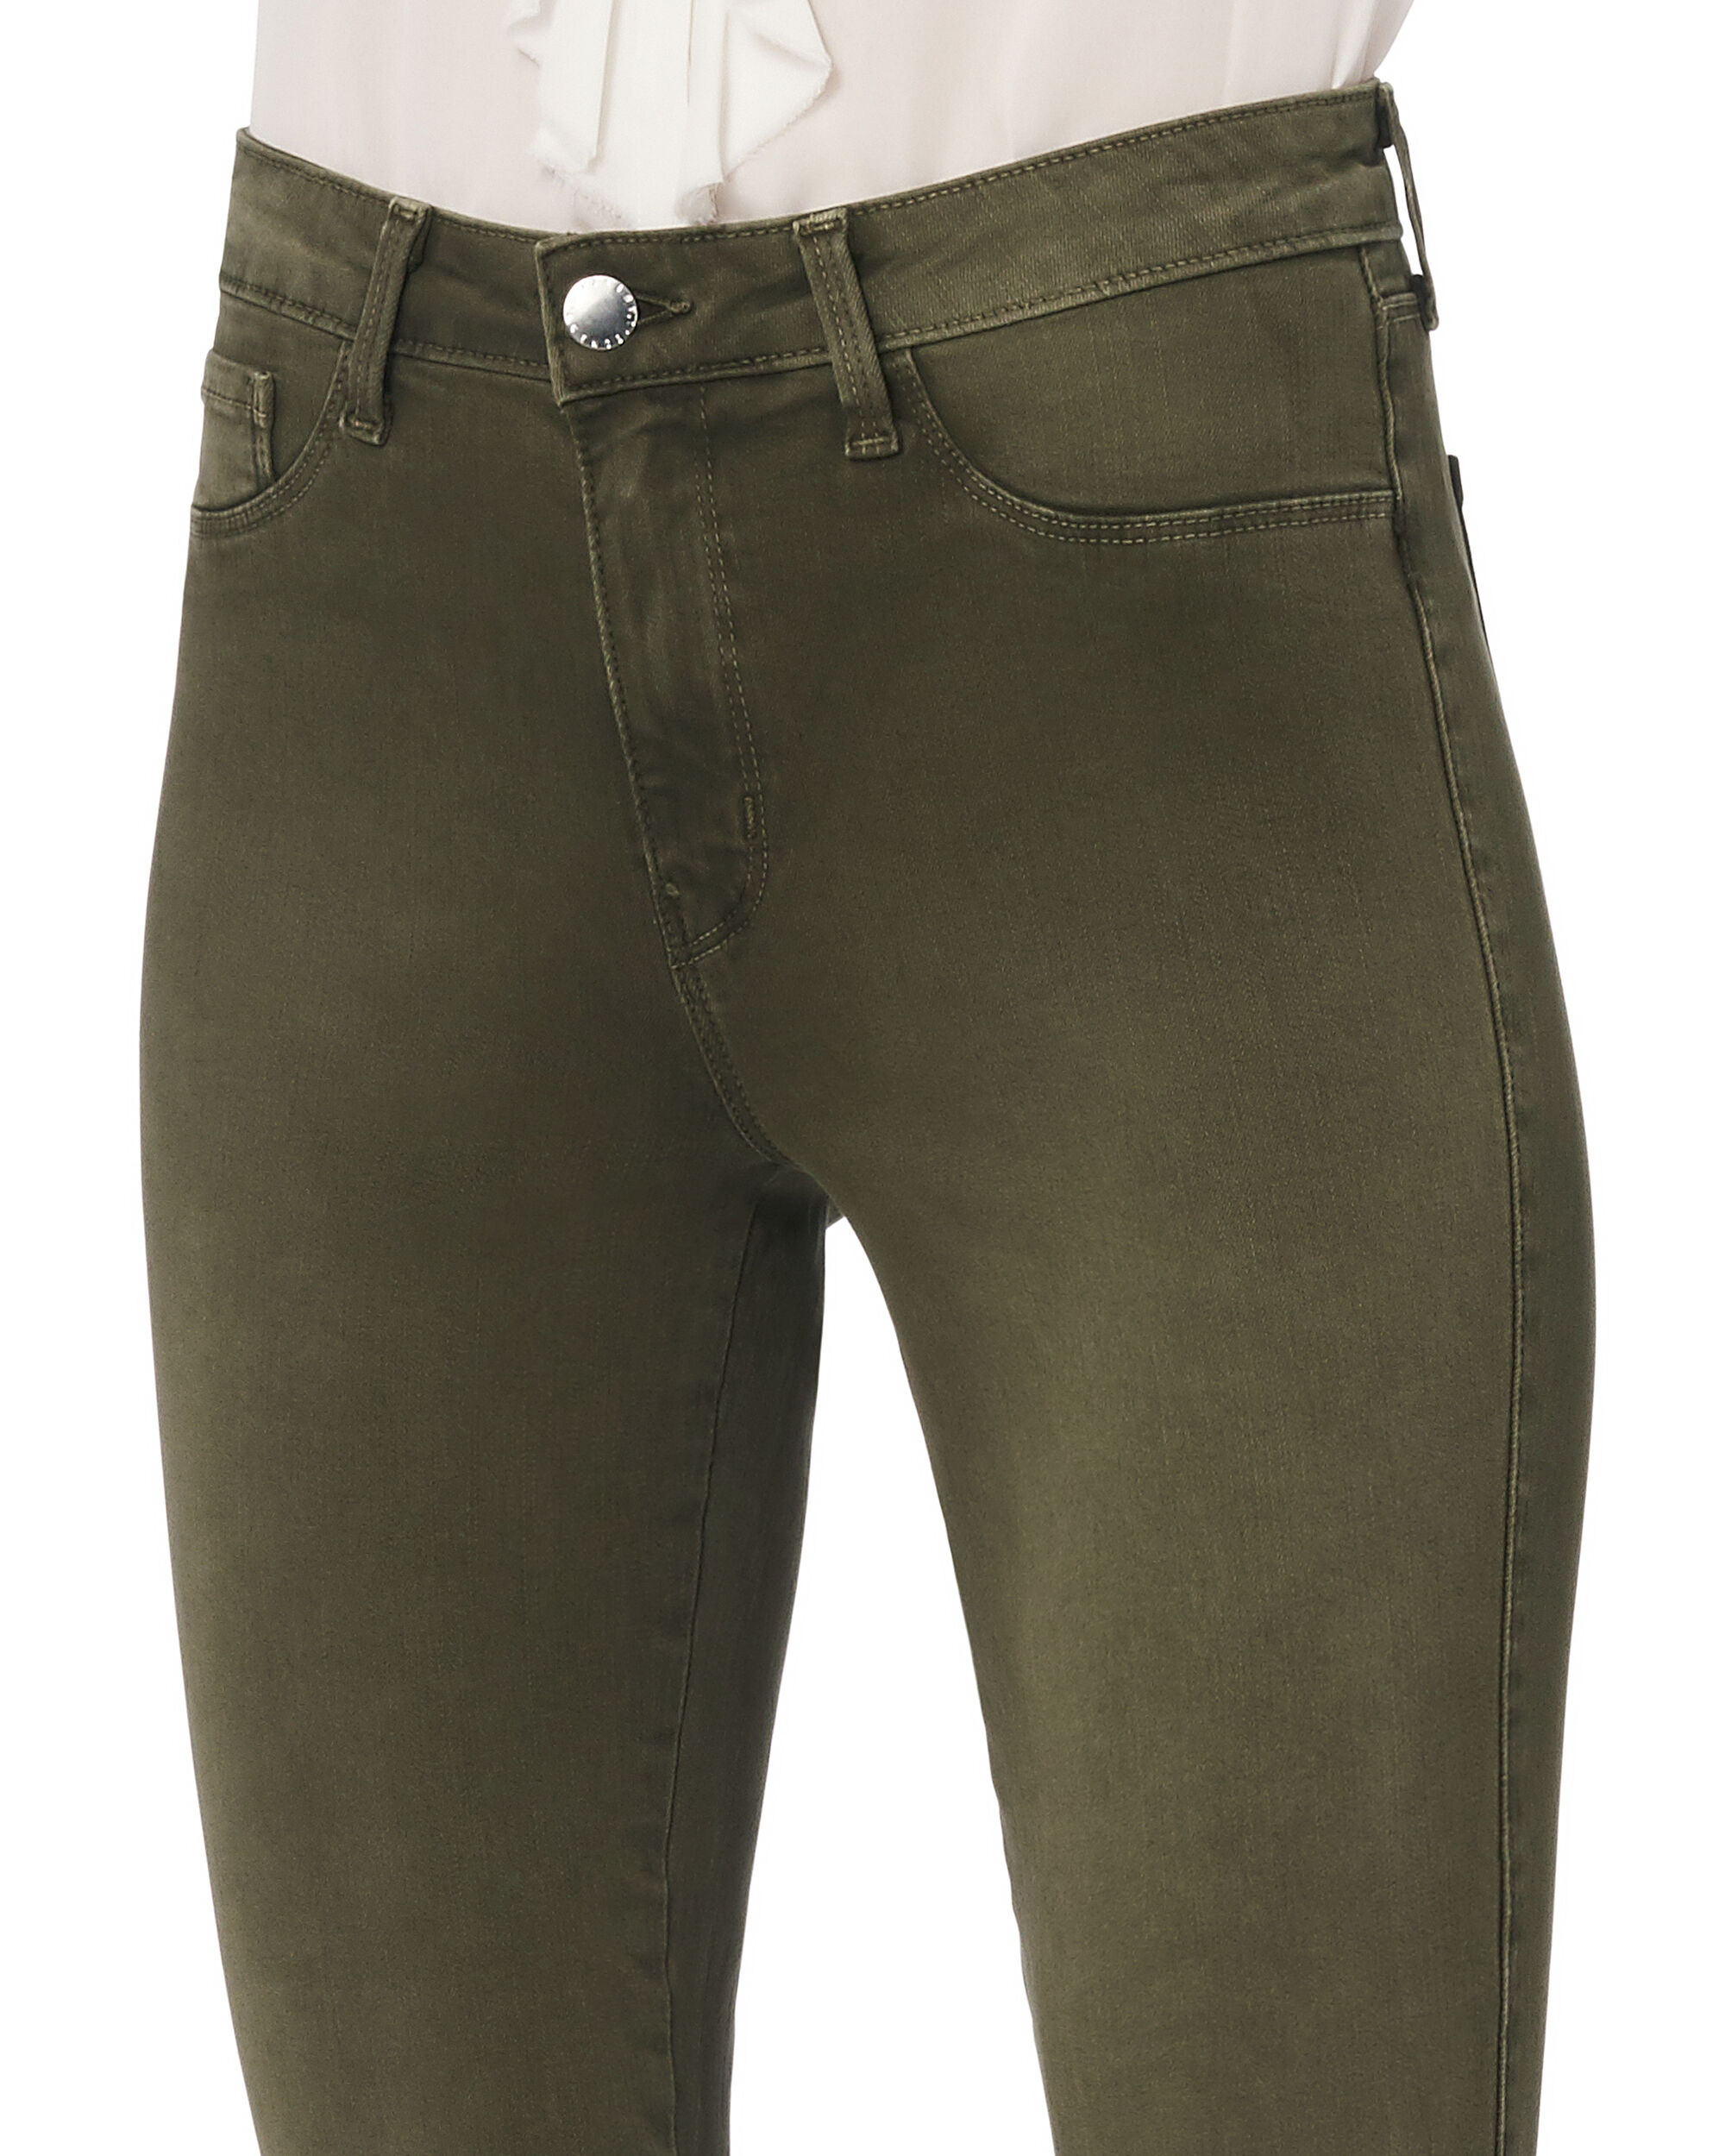 Margot Army High-Rise Ankle Skinny Jeans, OLIVE/ARMY, hi-res